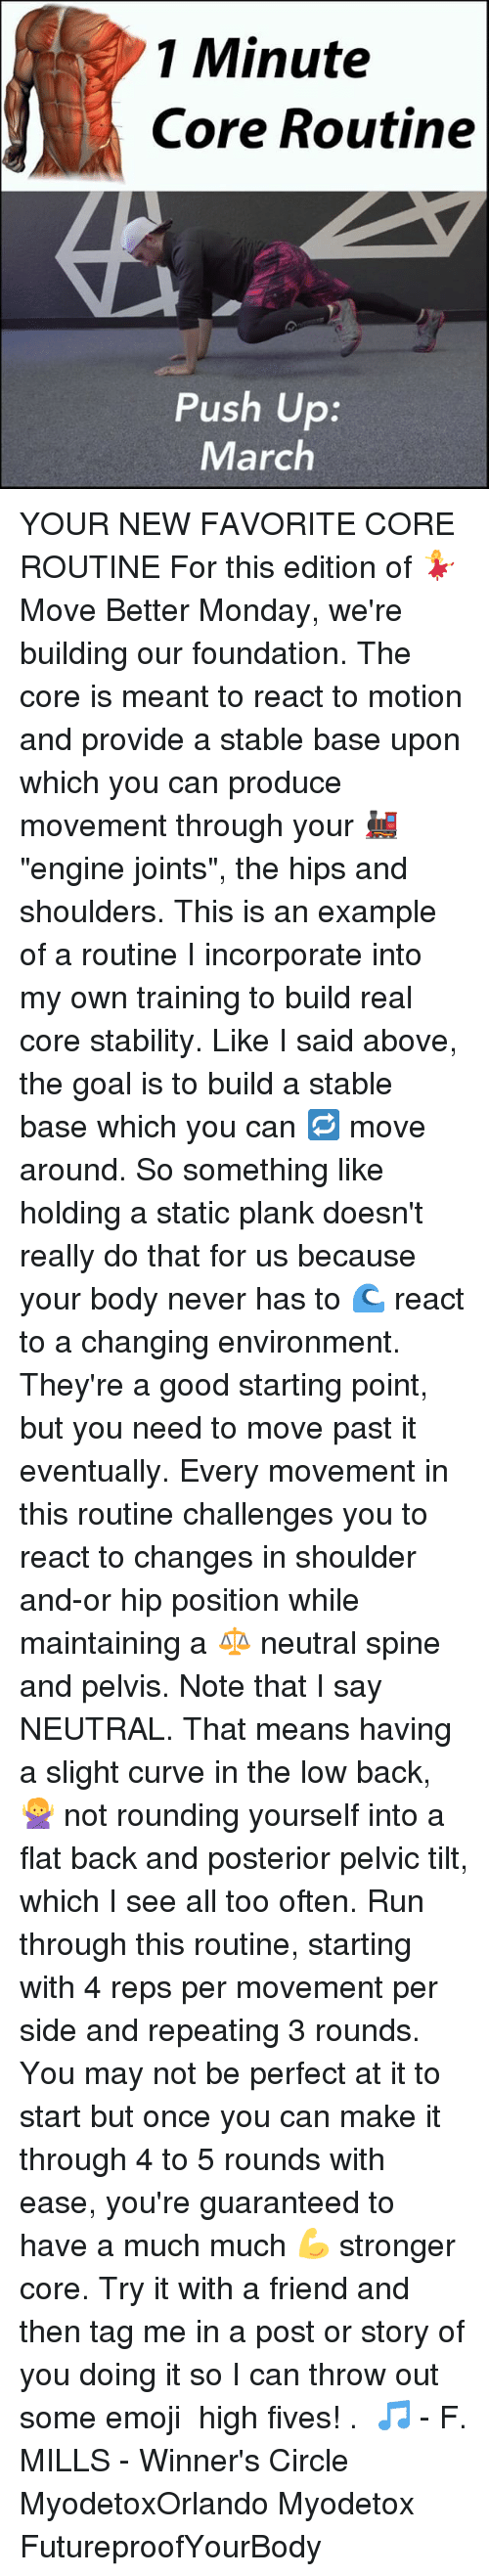 """statics: 1 Minute  Core Routine  Push Up  March YOUR NEW FAVORITE CORE ROUTINE For this edition of 💃 Move Better Monday, we're building our foundation. The core is meant to react to motion and provide a stable base upon which you can produce movement through your 🚂 """"engine joints"""", the hips and shoulders. This is an example of a routine I incorporate into my own training to build real core stability. Like I said above, the goal is to build a stable base which you can 🔁 move around. So something like holding a static plank doesn't really do that for us because your body never has to 🌊 react to a changing environment. They're a good starting point, but you need to move past it eventually. Every movement in this routine challenges you to react to changes in shoulder and-or hip position while maintaining a ⚖ neutral spine and pelvis. Note that I say NEUTRAL. That means having a slight curve in the low back, 🙅 not rounding yourself into a flat back and posterior pelvic tilt, which I see all too often. Run through this routine, starting with 4 reps per movement per side and repeating 3 rounds. You may not be perfect at it to start but once you can make it through 4 to 5 rounds with ease, you're guaranteed to have a much much 💪 stronger core. Try it with a friend and then tag me in a post or story of you doing it so I can throw out some emoji 🖑 high fives! . 🎵 - F. MILLS - Winner's Circle MyodetoxOrlando Myodetox FutureproofYourBody"""